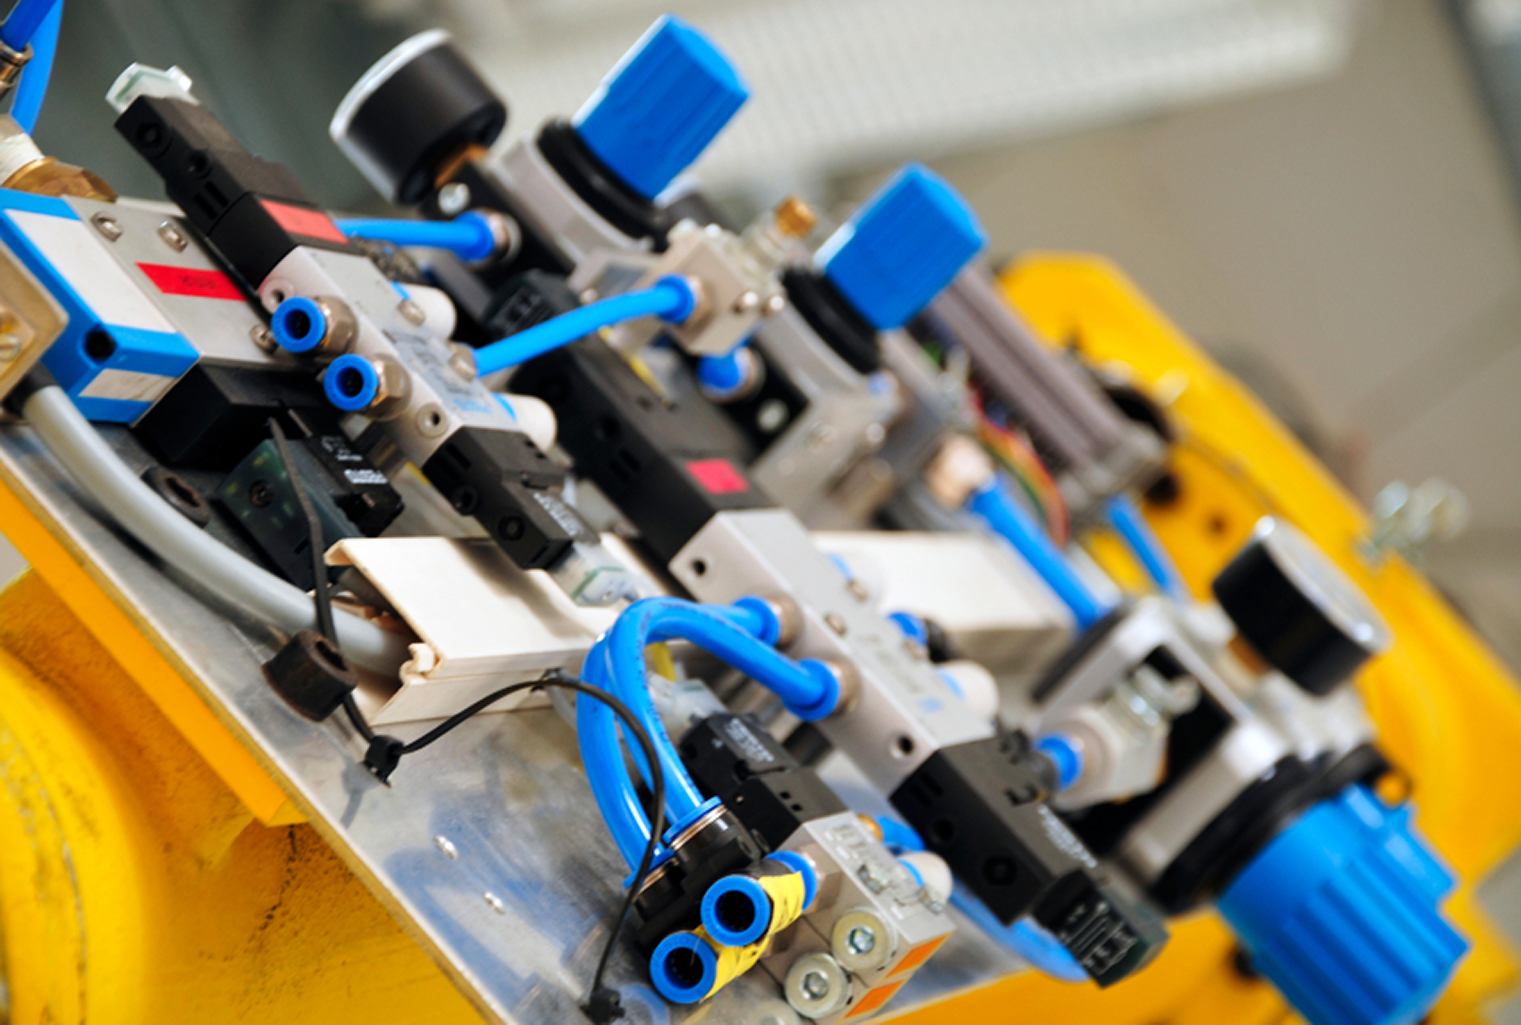 hydraulics pneumatics Attempt to limit the personal info you put on the web social network sites can be great for networking, however identity thieves can utilize the info you share.